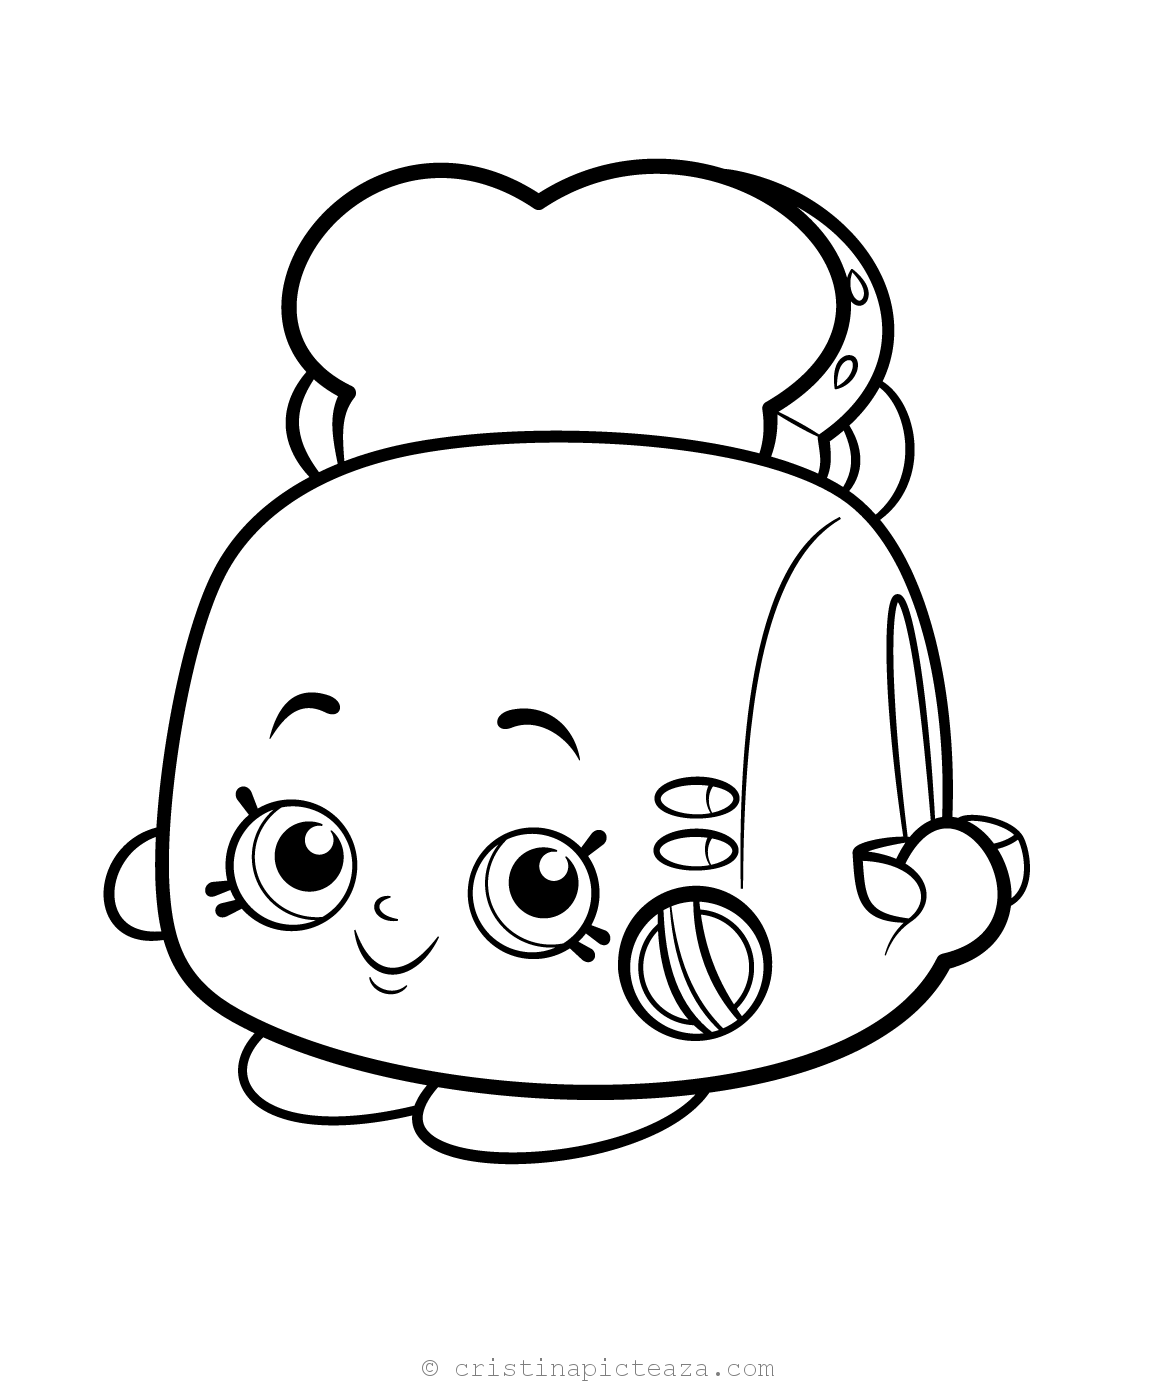 coloring pages shopkins shopkins coloring in shopville book by buzzpop shopkins pages coloring